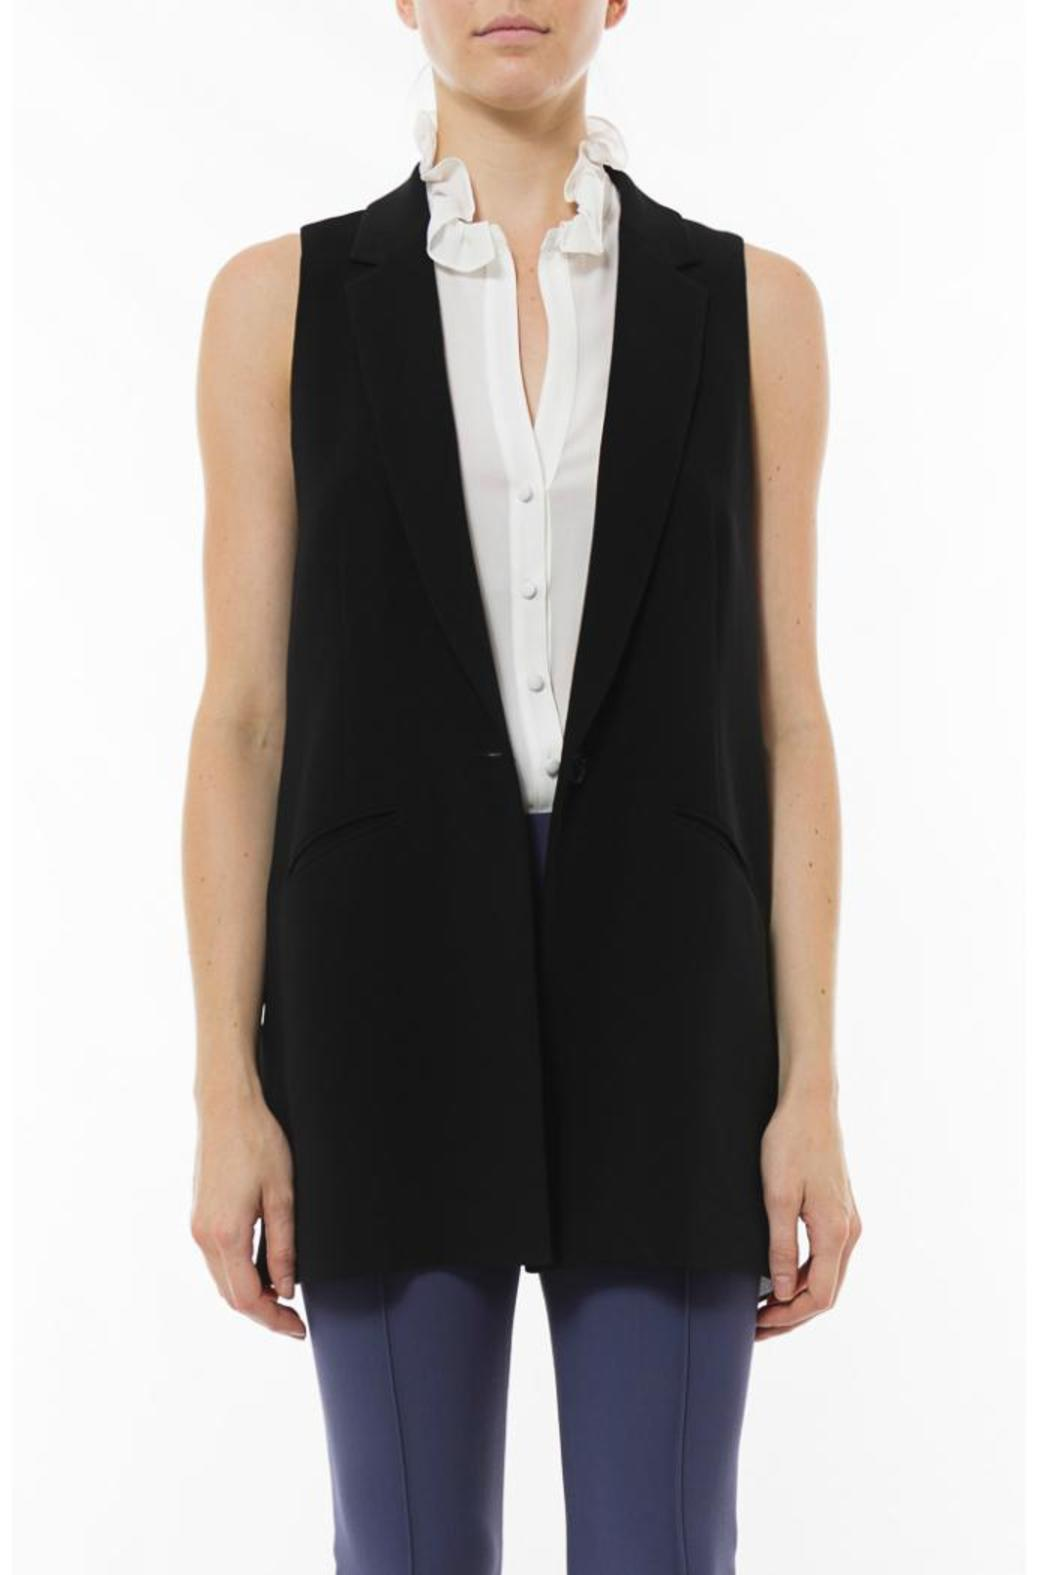 Elizabeth & James Tailored Garnet Vest - Main Image